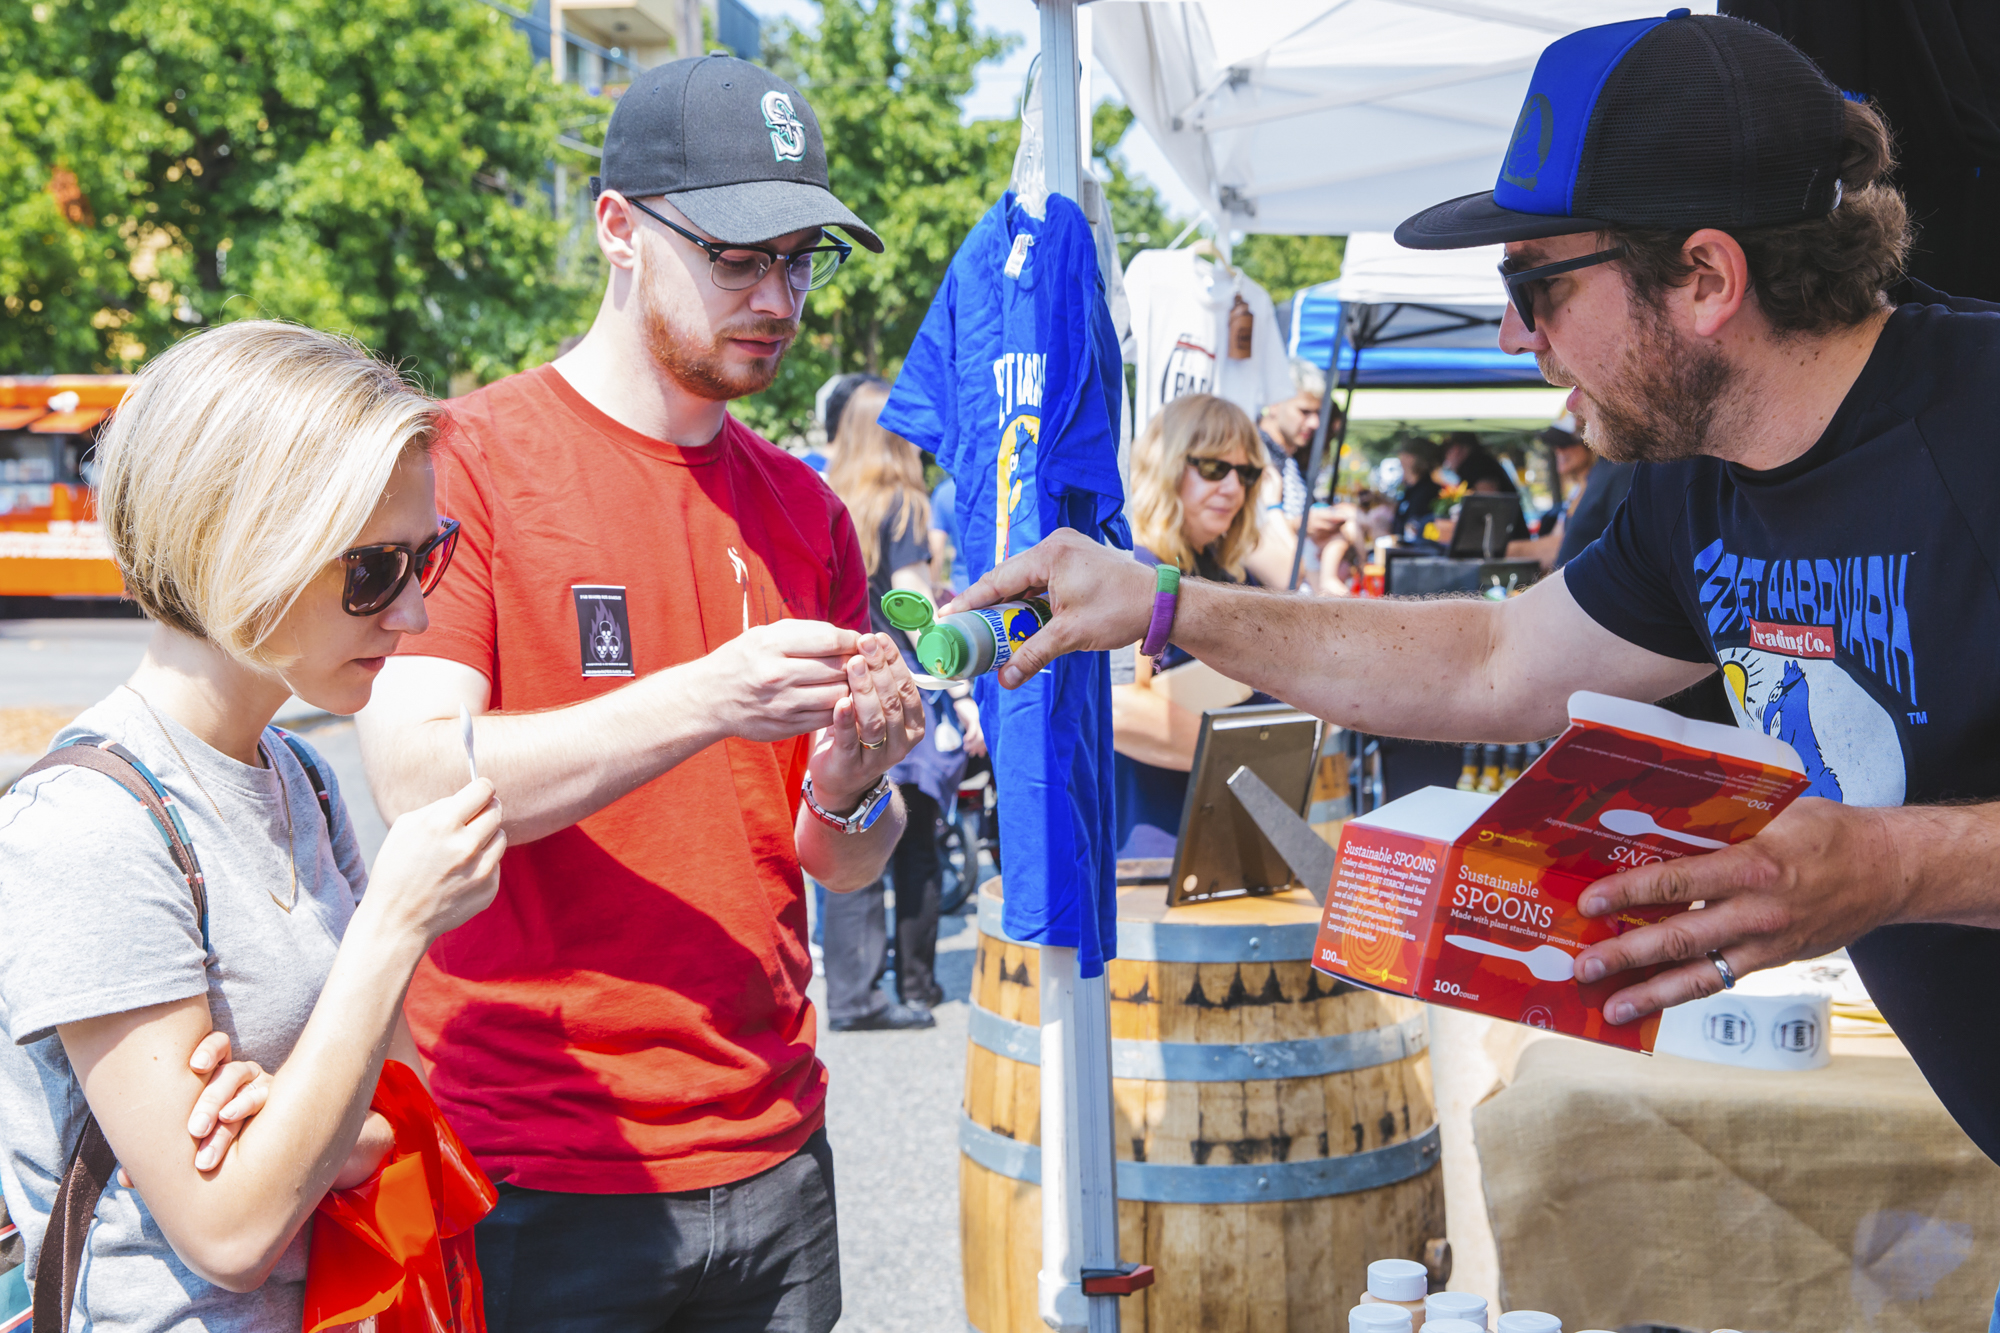 <p>Seattle's *hottest* festival popped up this Saturday, August 18 at Ballard Commons Park and it was hot, hot, HOT! The Hot Sauce Fest featured some of the best hot sauces, food trucks and entertainment. Festival goers washed down the hot sauce burn with beers from Diamond Knot Craft Brewing and cocktails from Heritage Distilling Company (Image: Sunita Martini / Seattle Refined).</p>